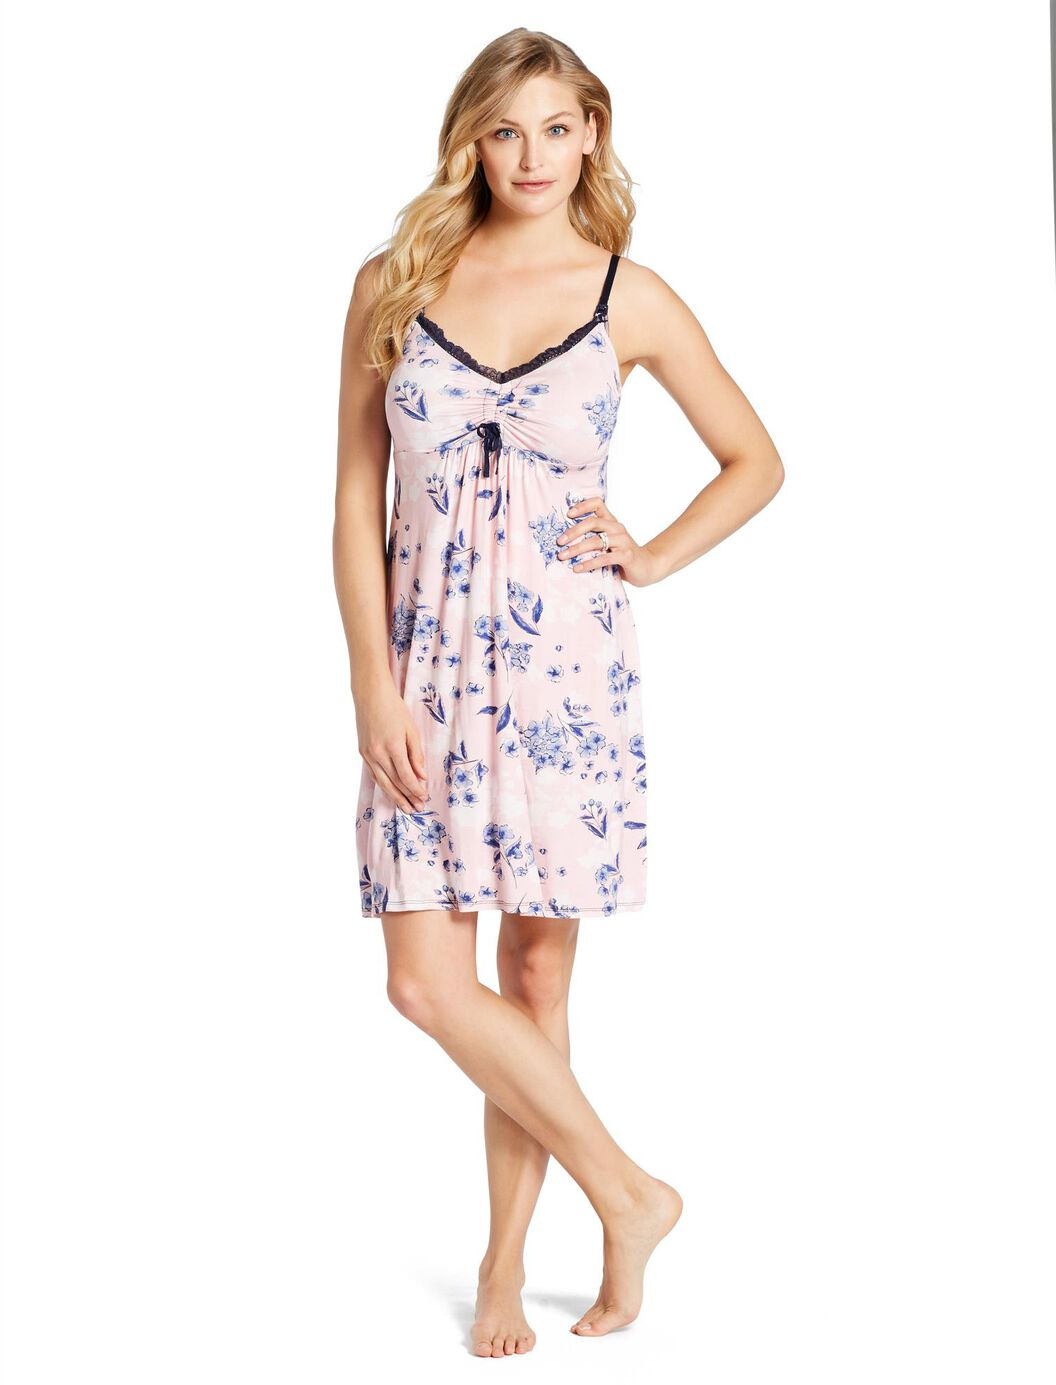 Jessica Simpson Lace Trim Maternity Nightgown at Motherhood Maternity in Victor, NY | Tuggl